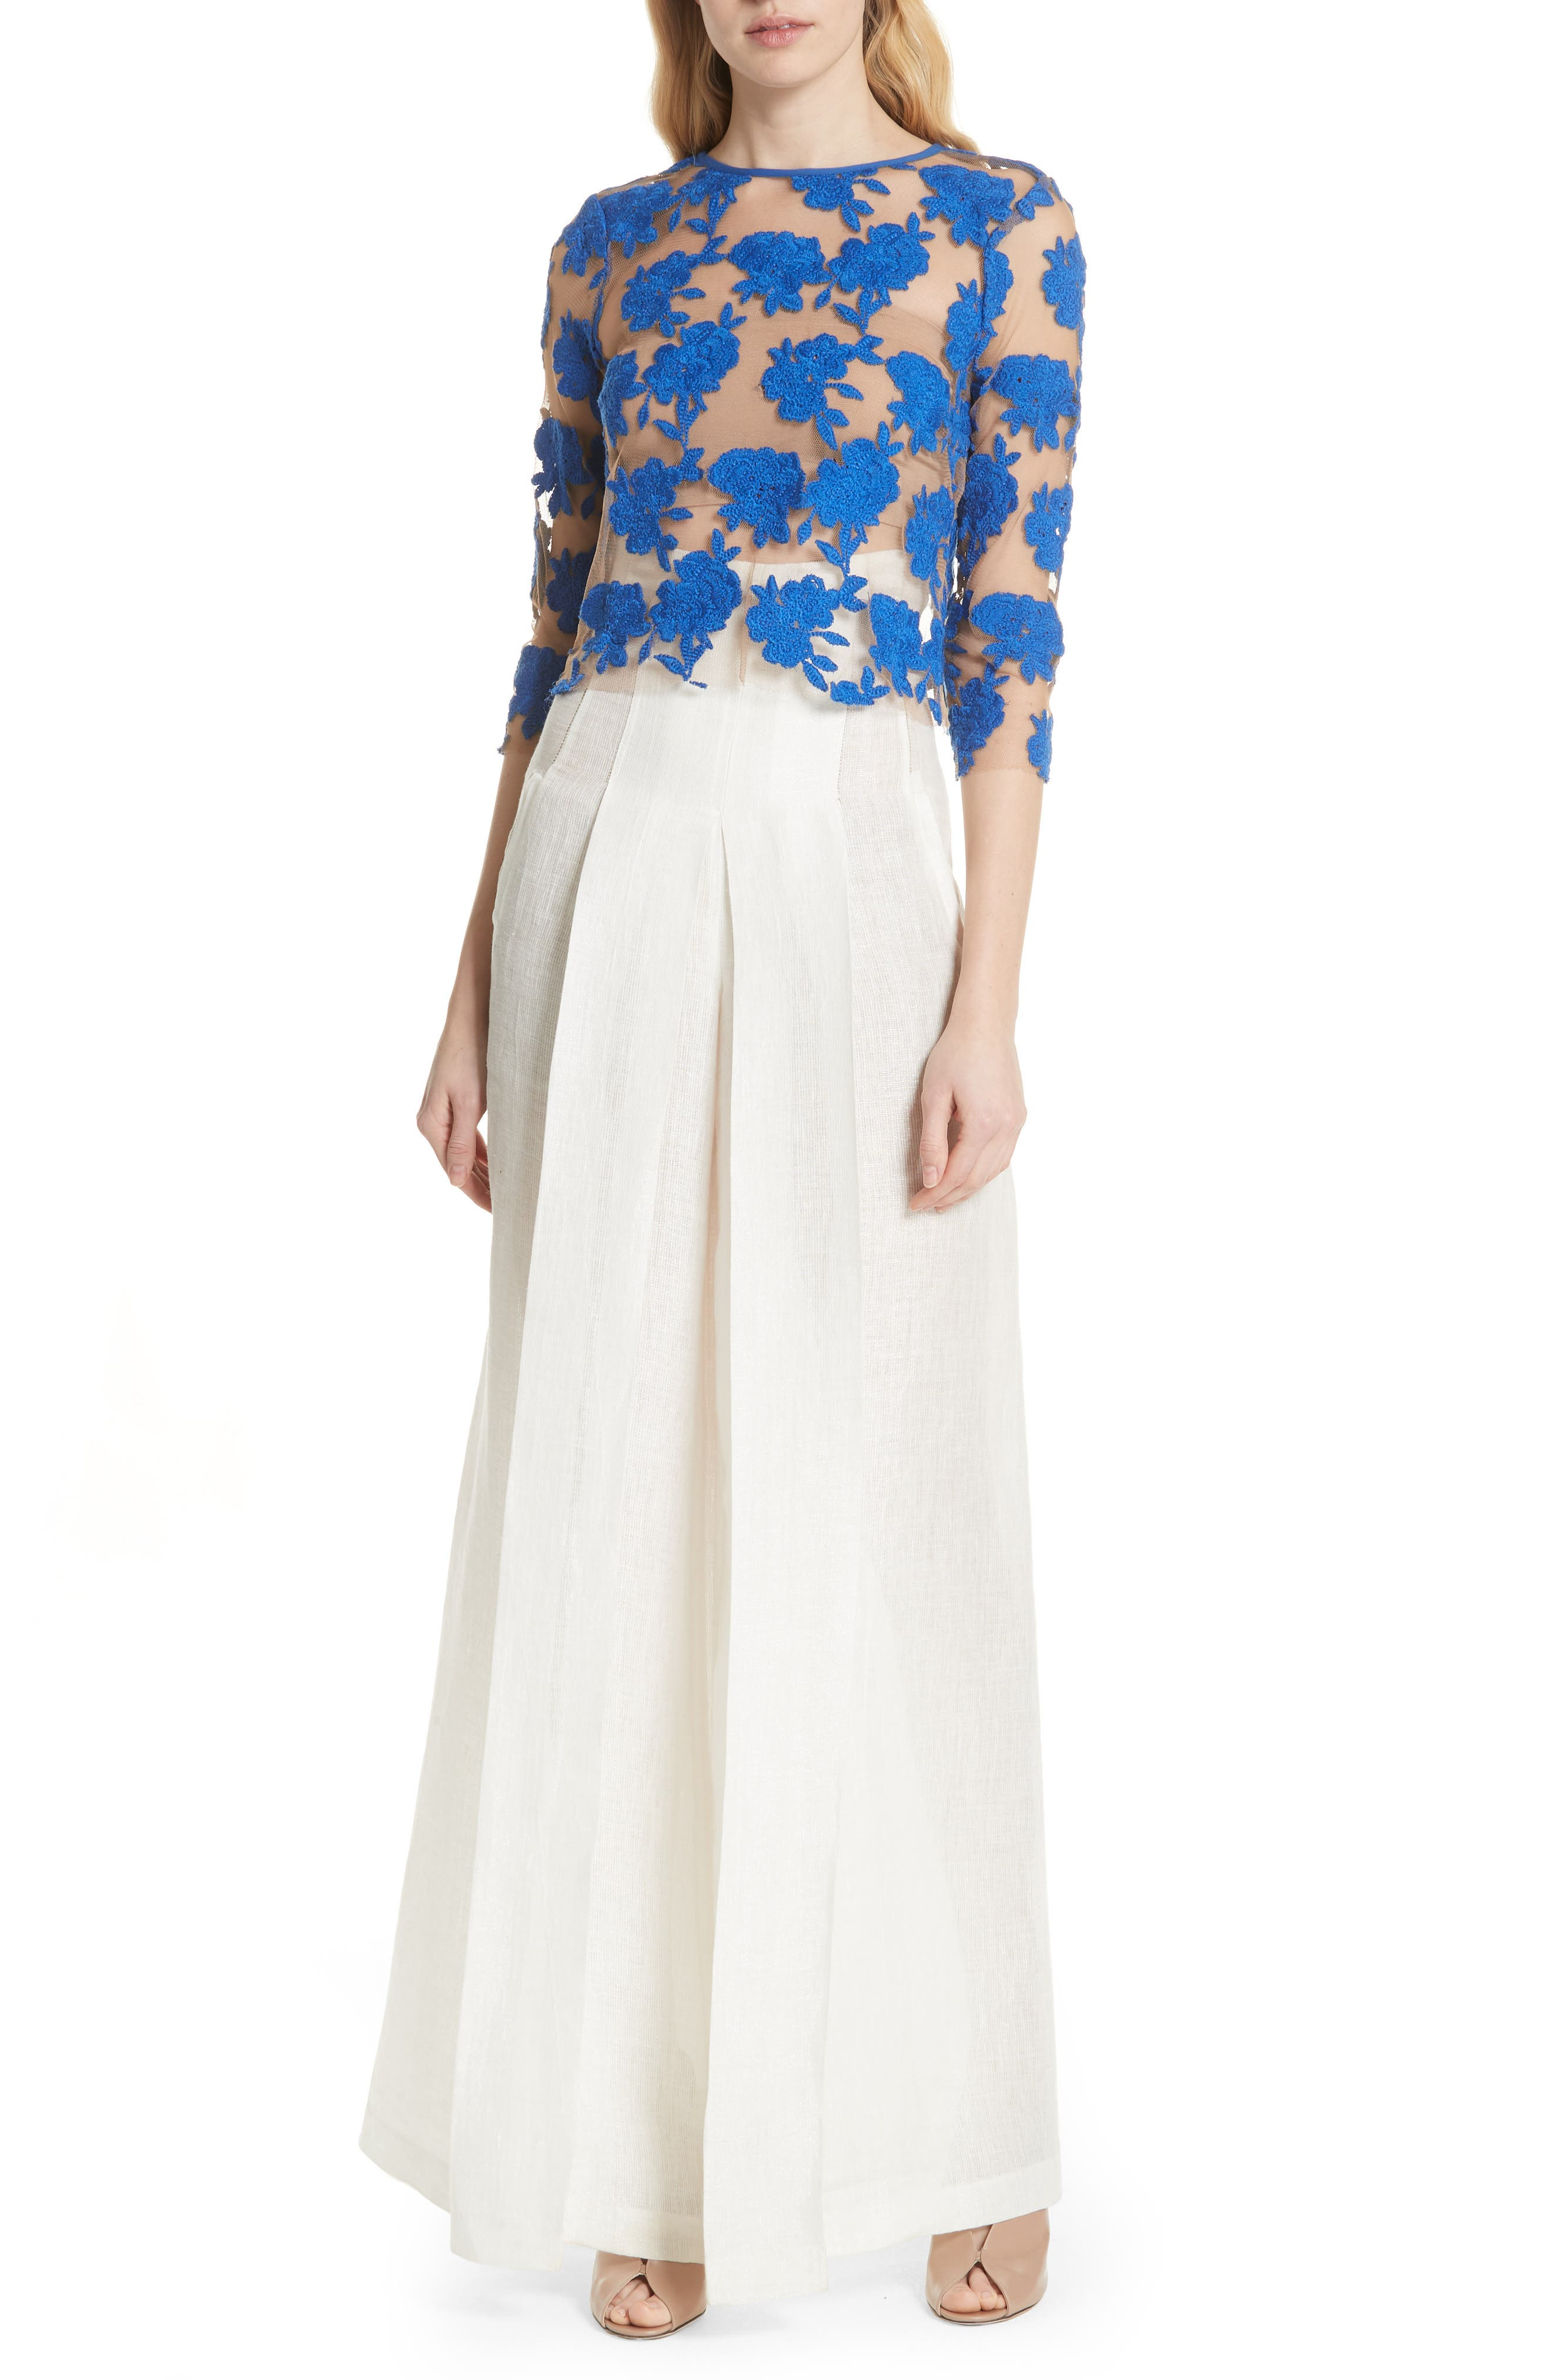 Sheer Embroidered Floral Top,                             Alternate thumbnail 7, color,                             Blue Pigment